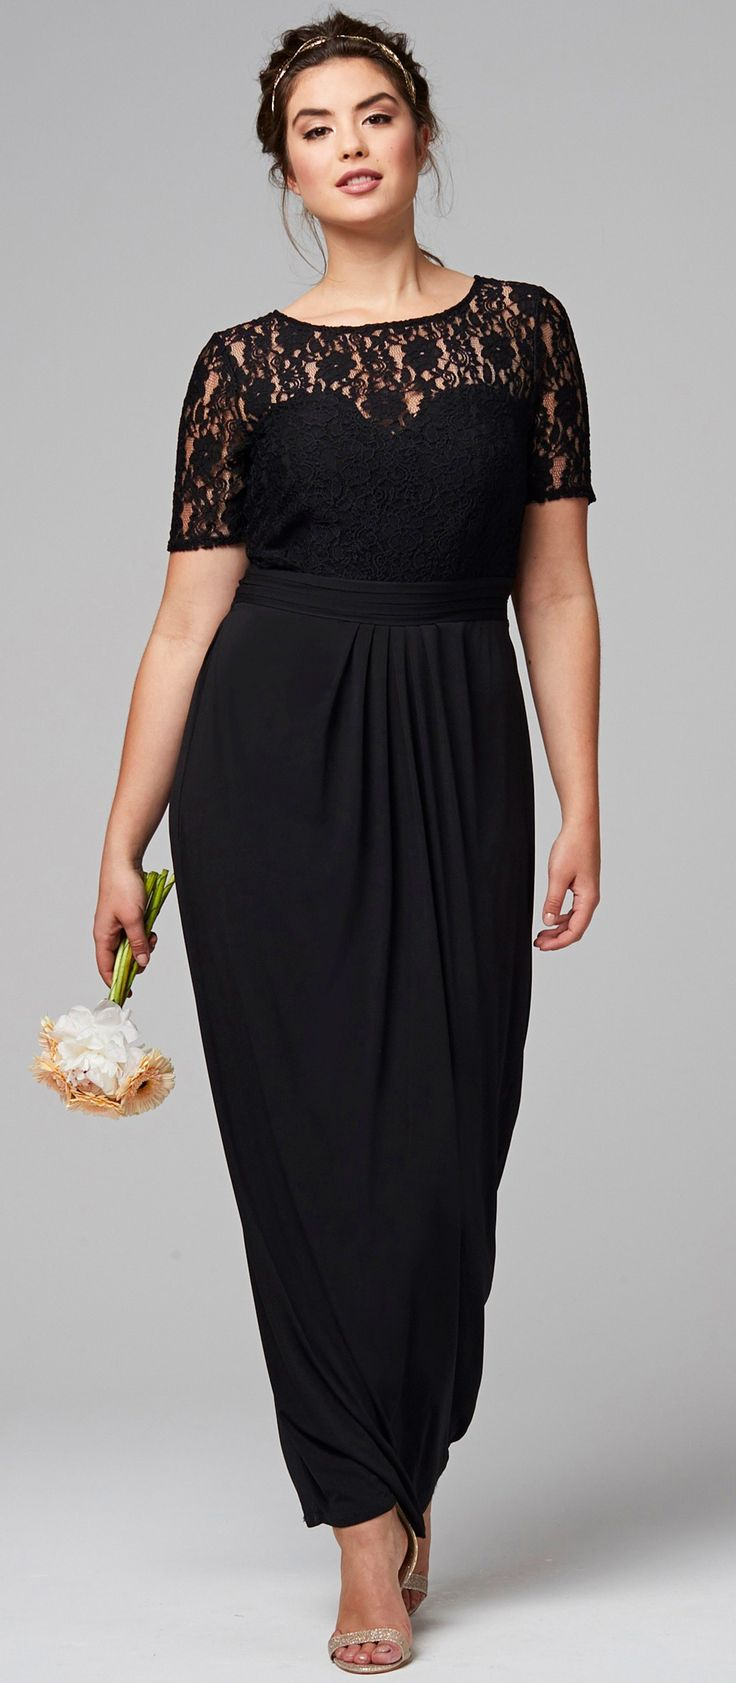 best 25+ plus size dresses ideas on pinterest | plus size women